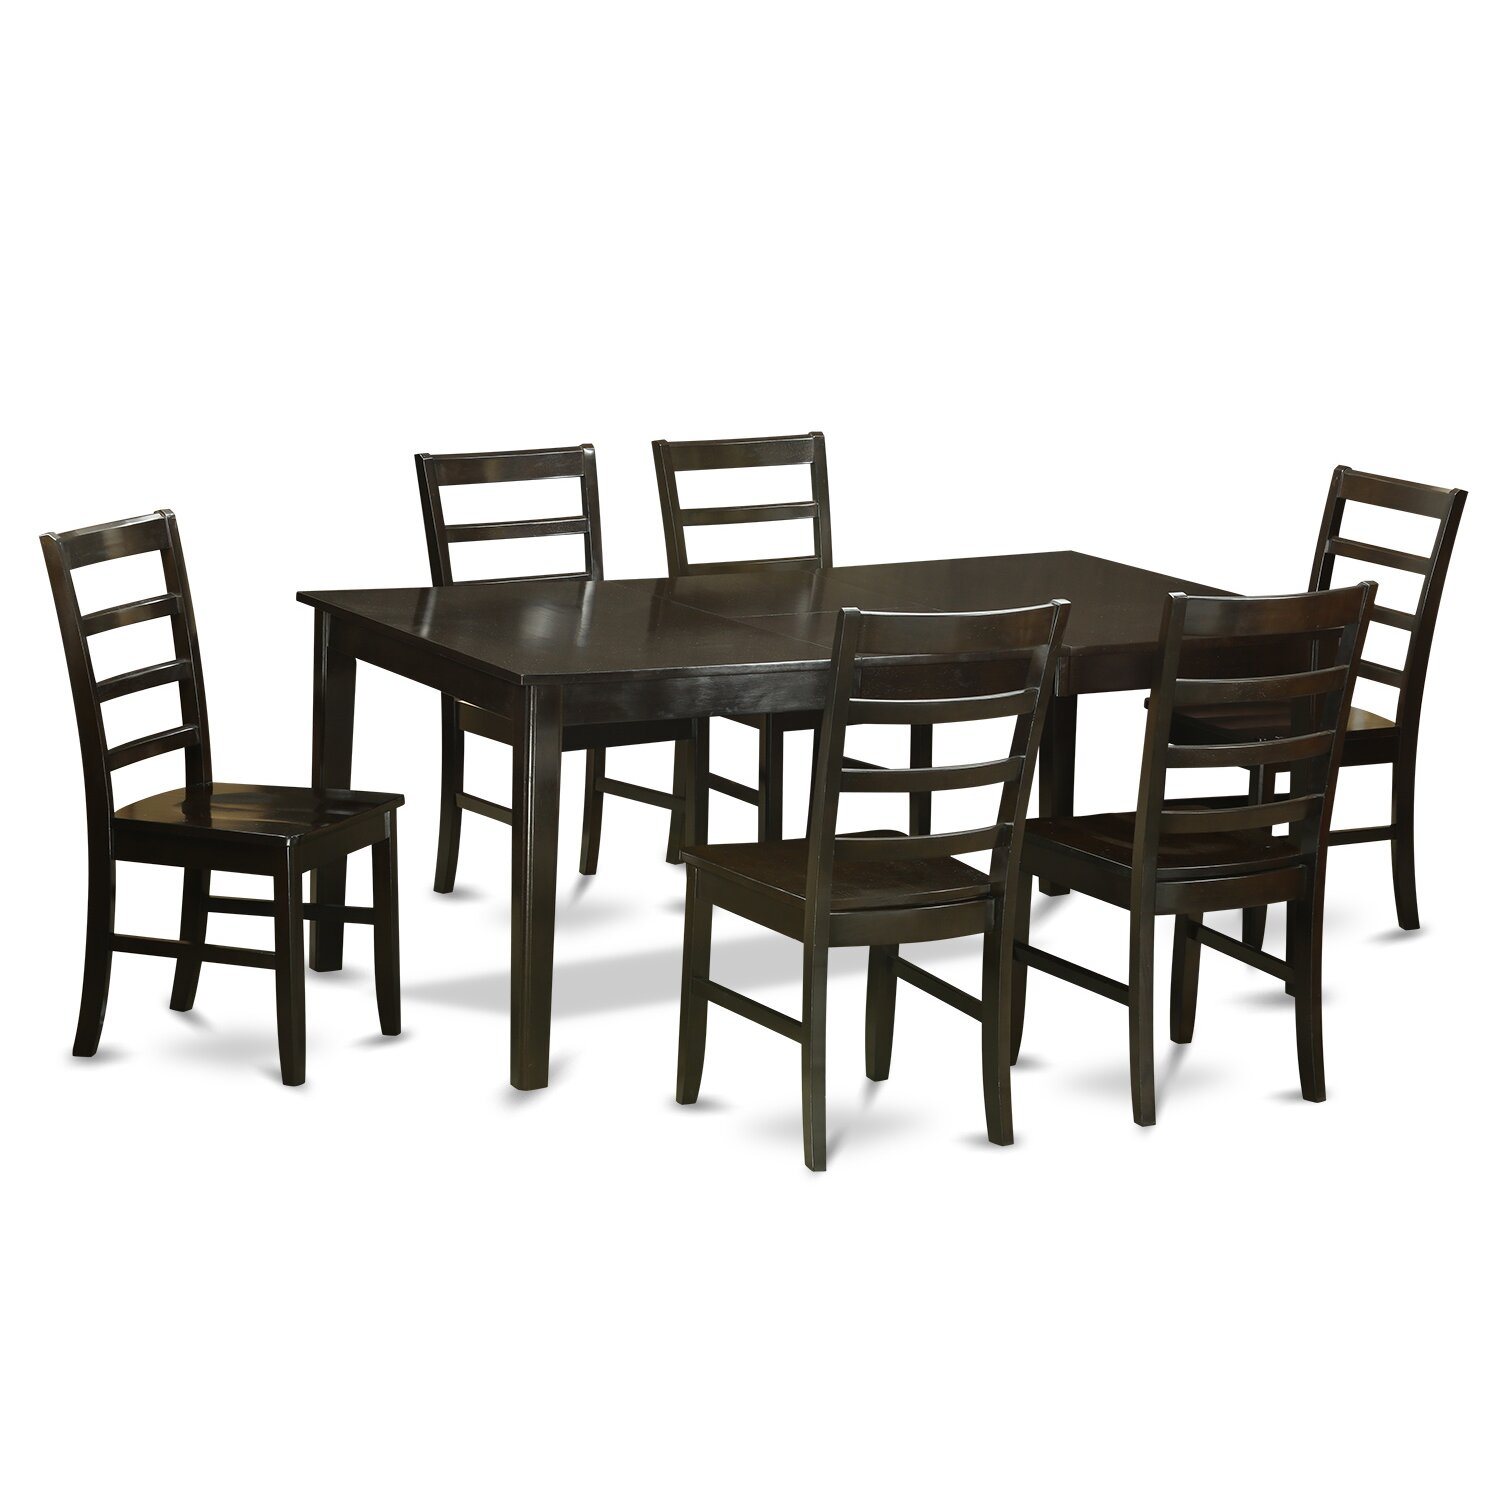 East west henley 7 piece dining set wayfair for 7 pc dining room set